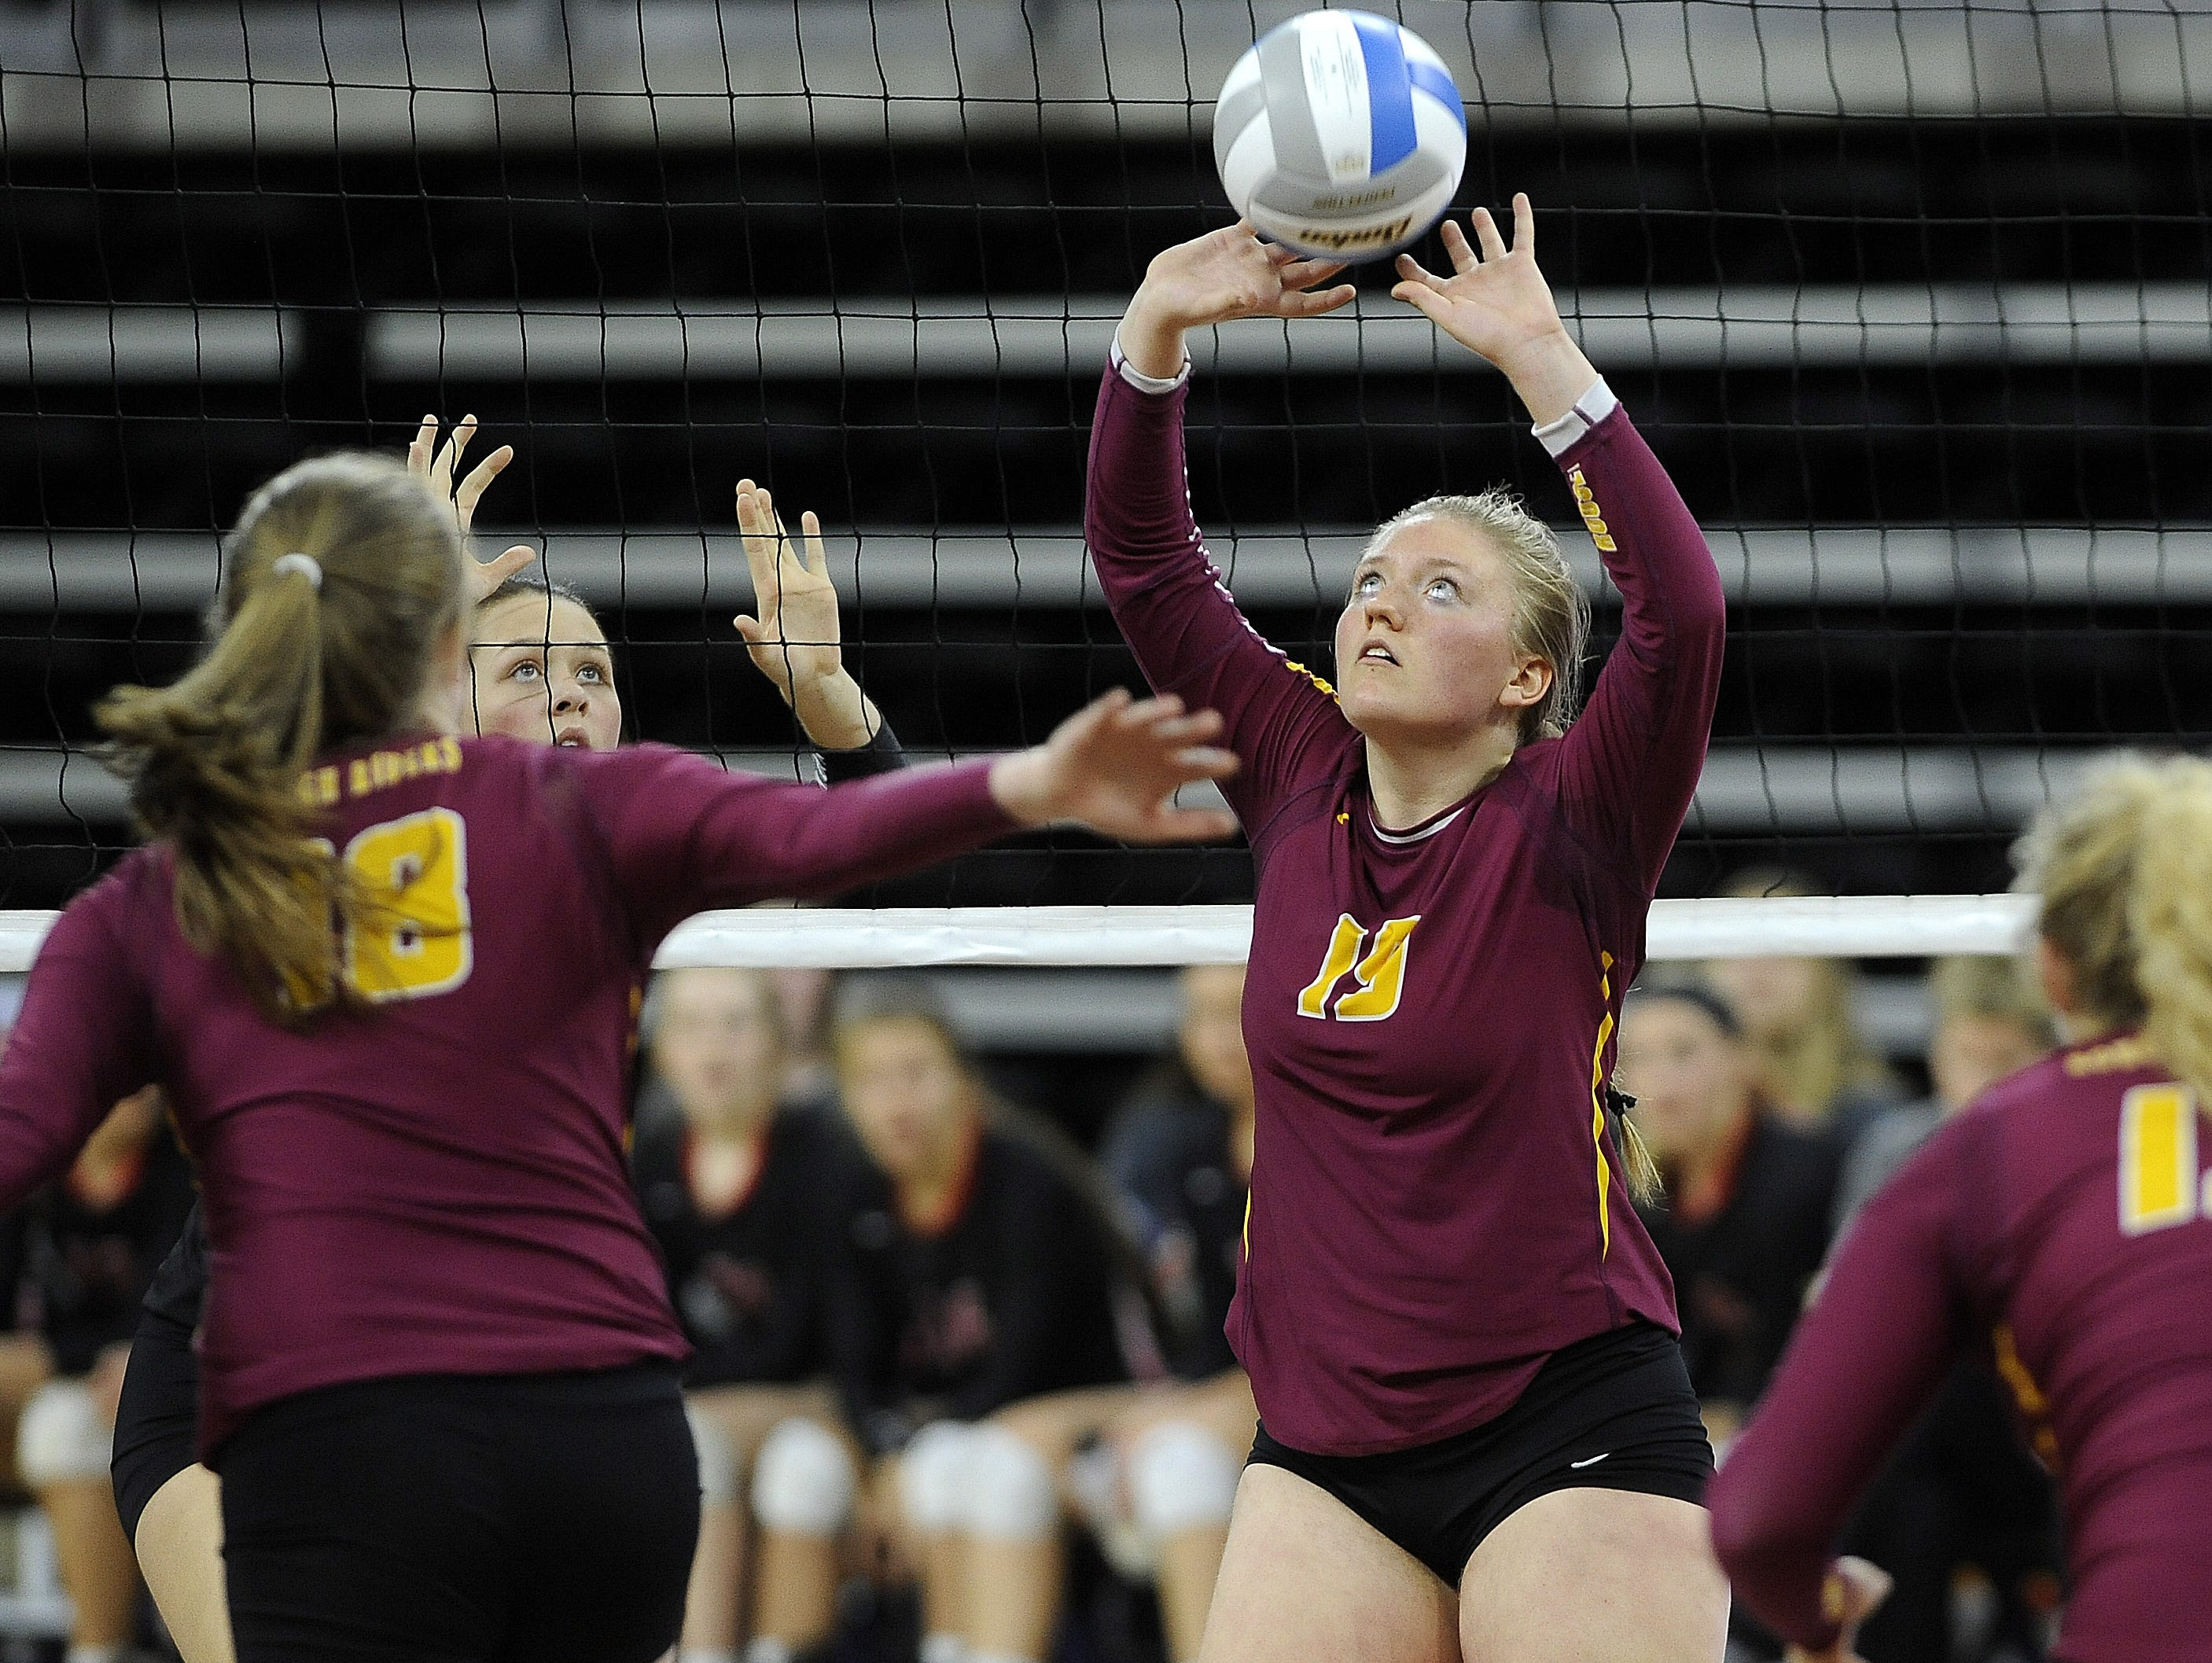 Roosevelt's #19 Bailey Lamb sets the volleyball against Brandon Valley during state volleyball action at the Denny Sanford Premier Center in Sioux Falls, S.D., Thursday, Nov. 19, 2015.